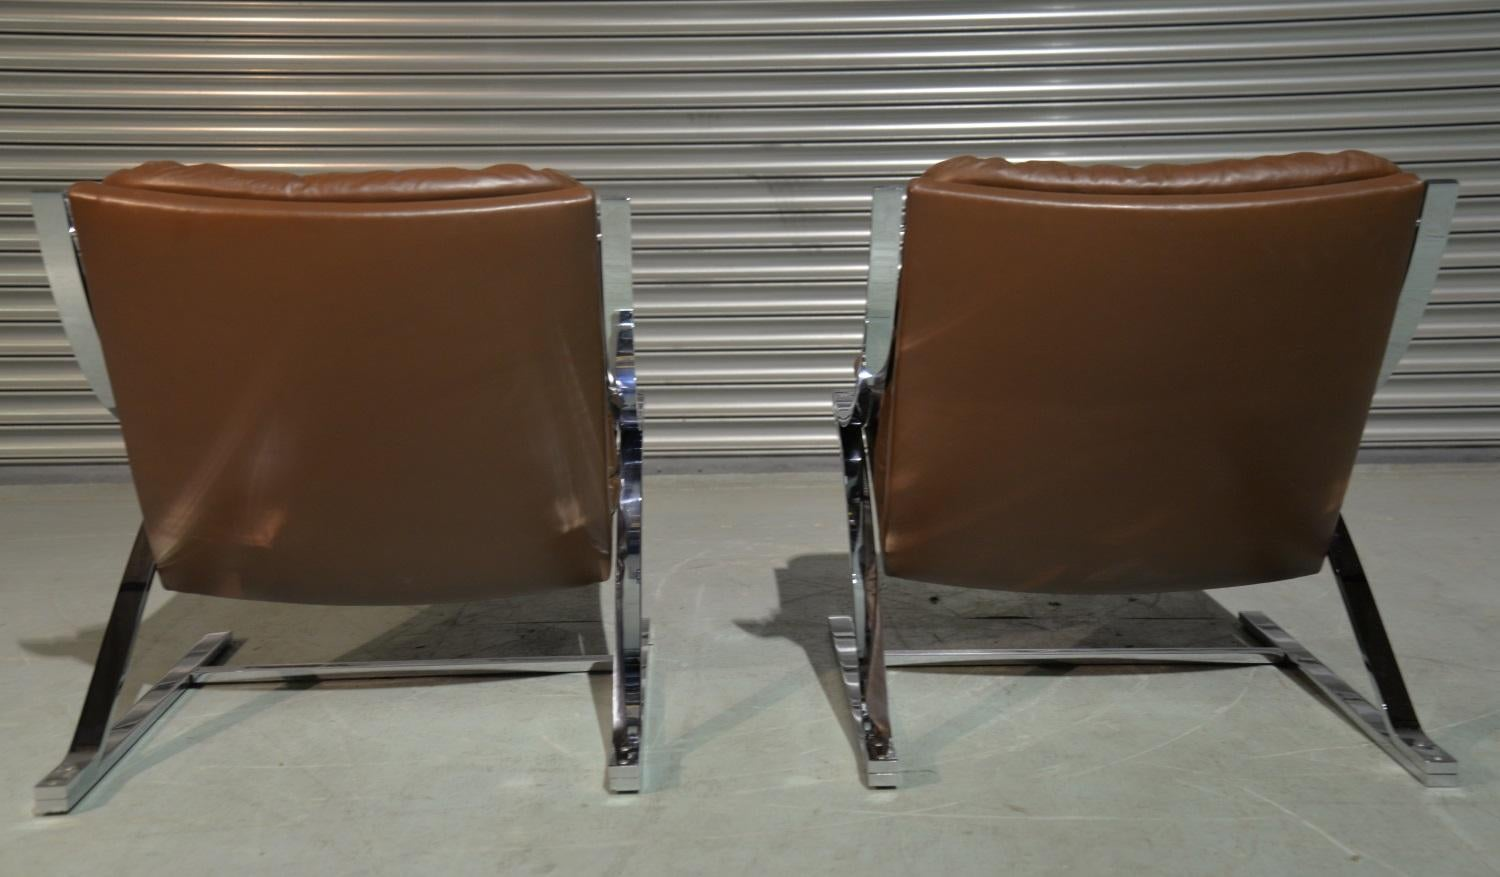 zeta desk chair world market french bistro chairs paul tuttle lounge for strassle of switzerland 1968 sale at 1stdibs